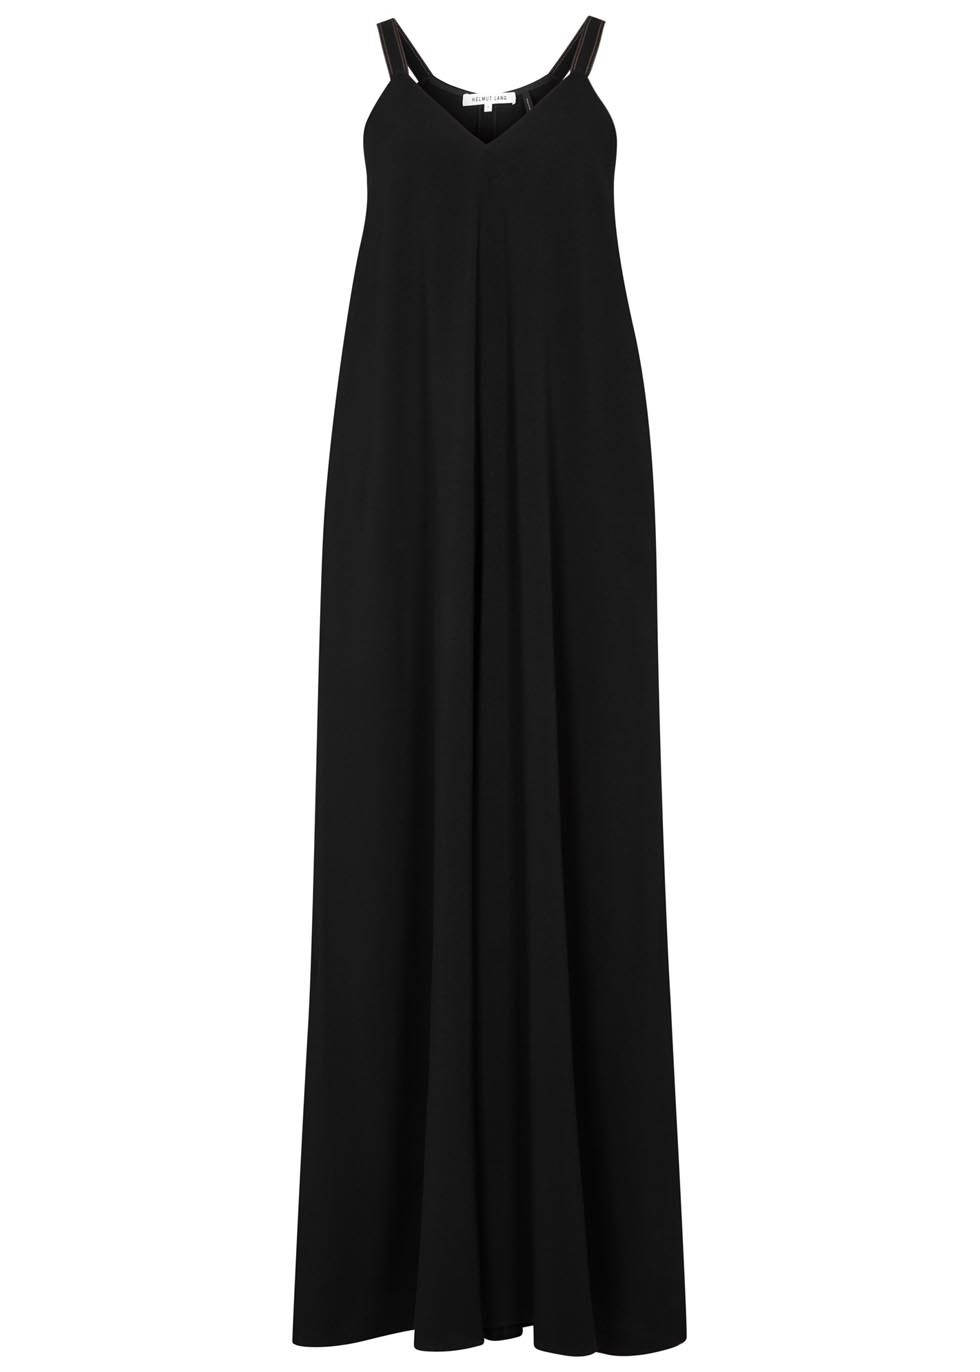 Black Wide Leg Jumpsuit - length: standard; neckline: round neck; sleeve style: spaghetti straps; fit: loose; pattern: plain; predominant colour: black; occasions: evening; fibres: viscose/rayon - stretch; sleeve length: sleeveless; texture group: crepes; style: jumpsuit; pattern type: fabric; season: s/s 2016; wardrobe: event